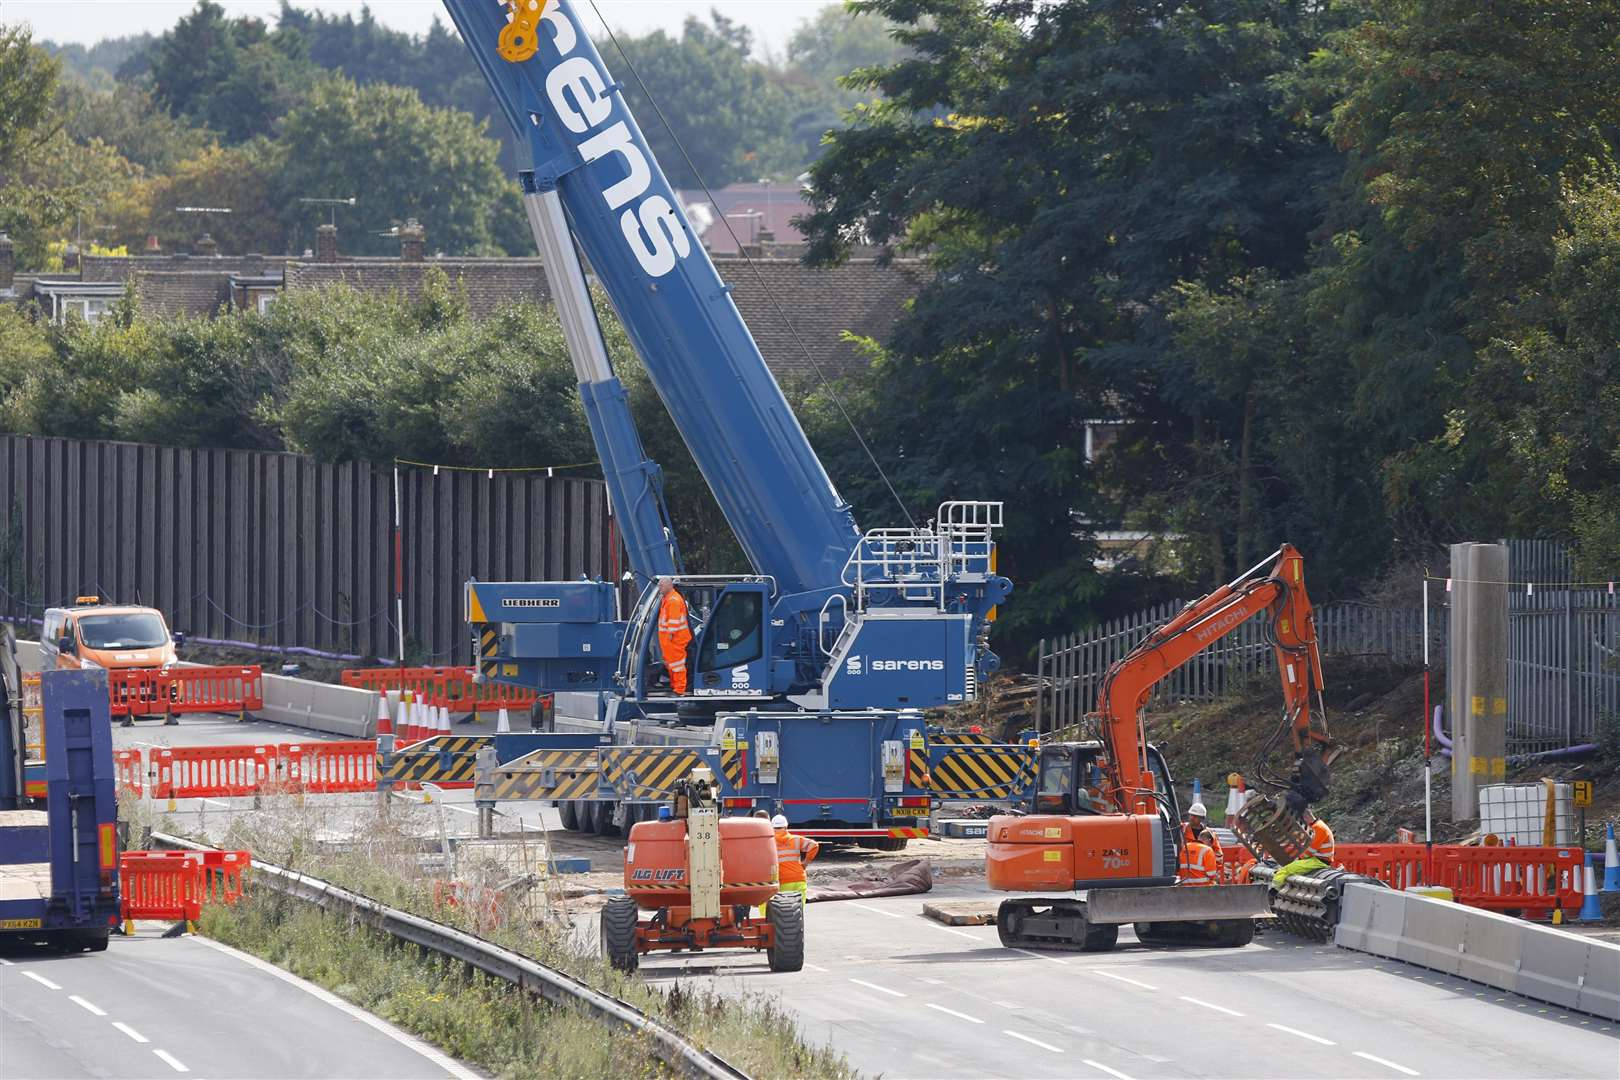 The dismantling of the footbridge is part of a project to turn the stretch of the M20 into a smart motorway. Picture: Andy Jones